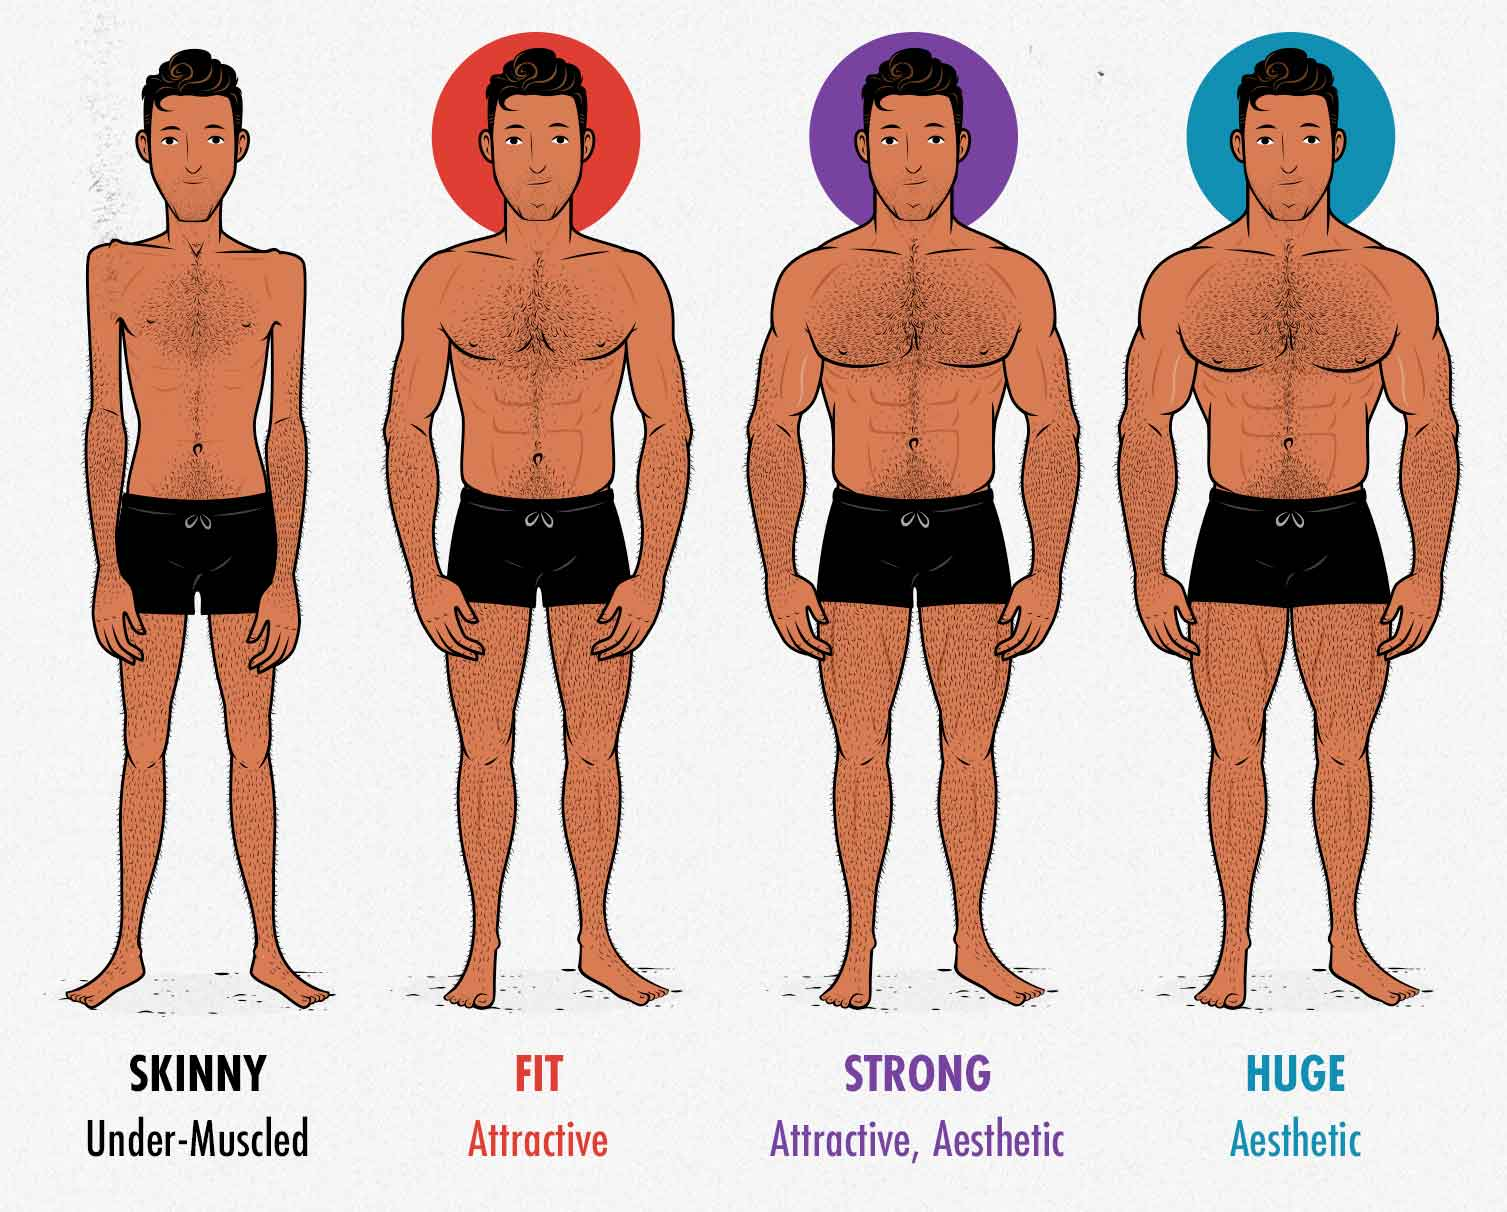 Diagram showing male muscularity and how it affects our attractiveness and aesthetics.